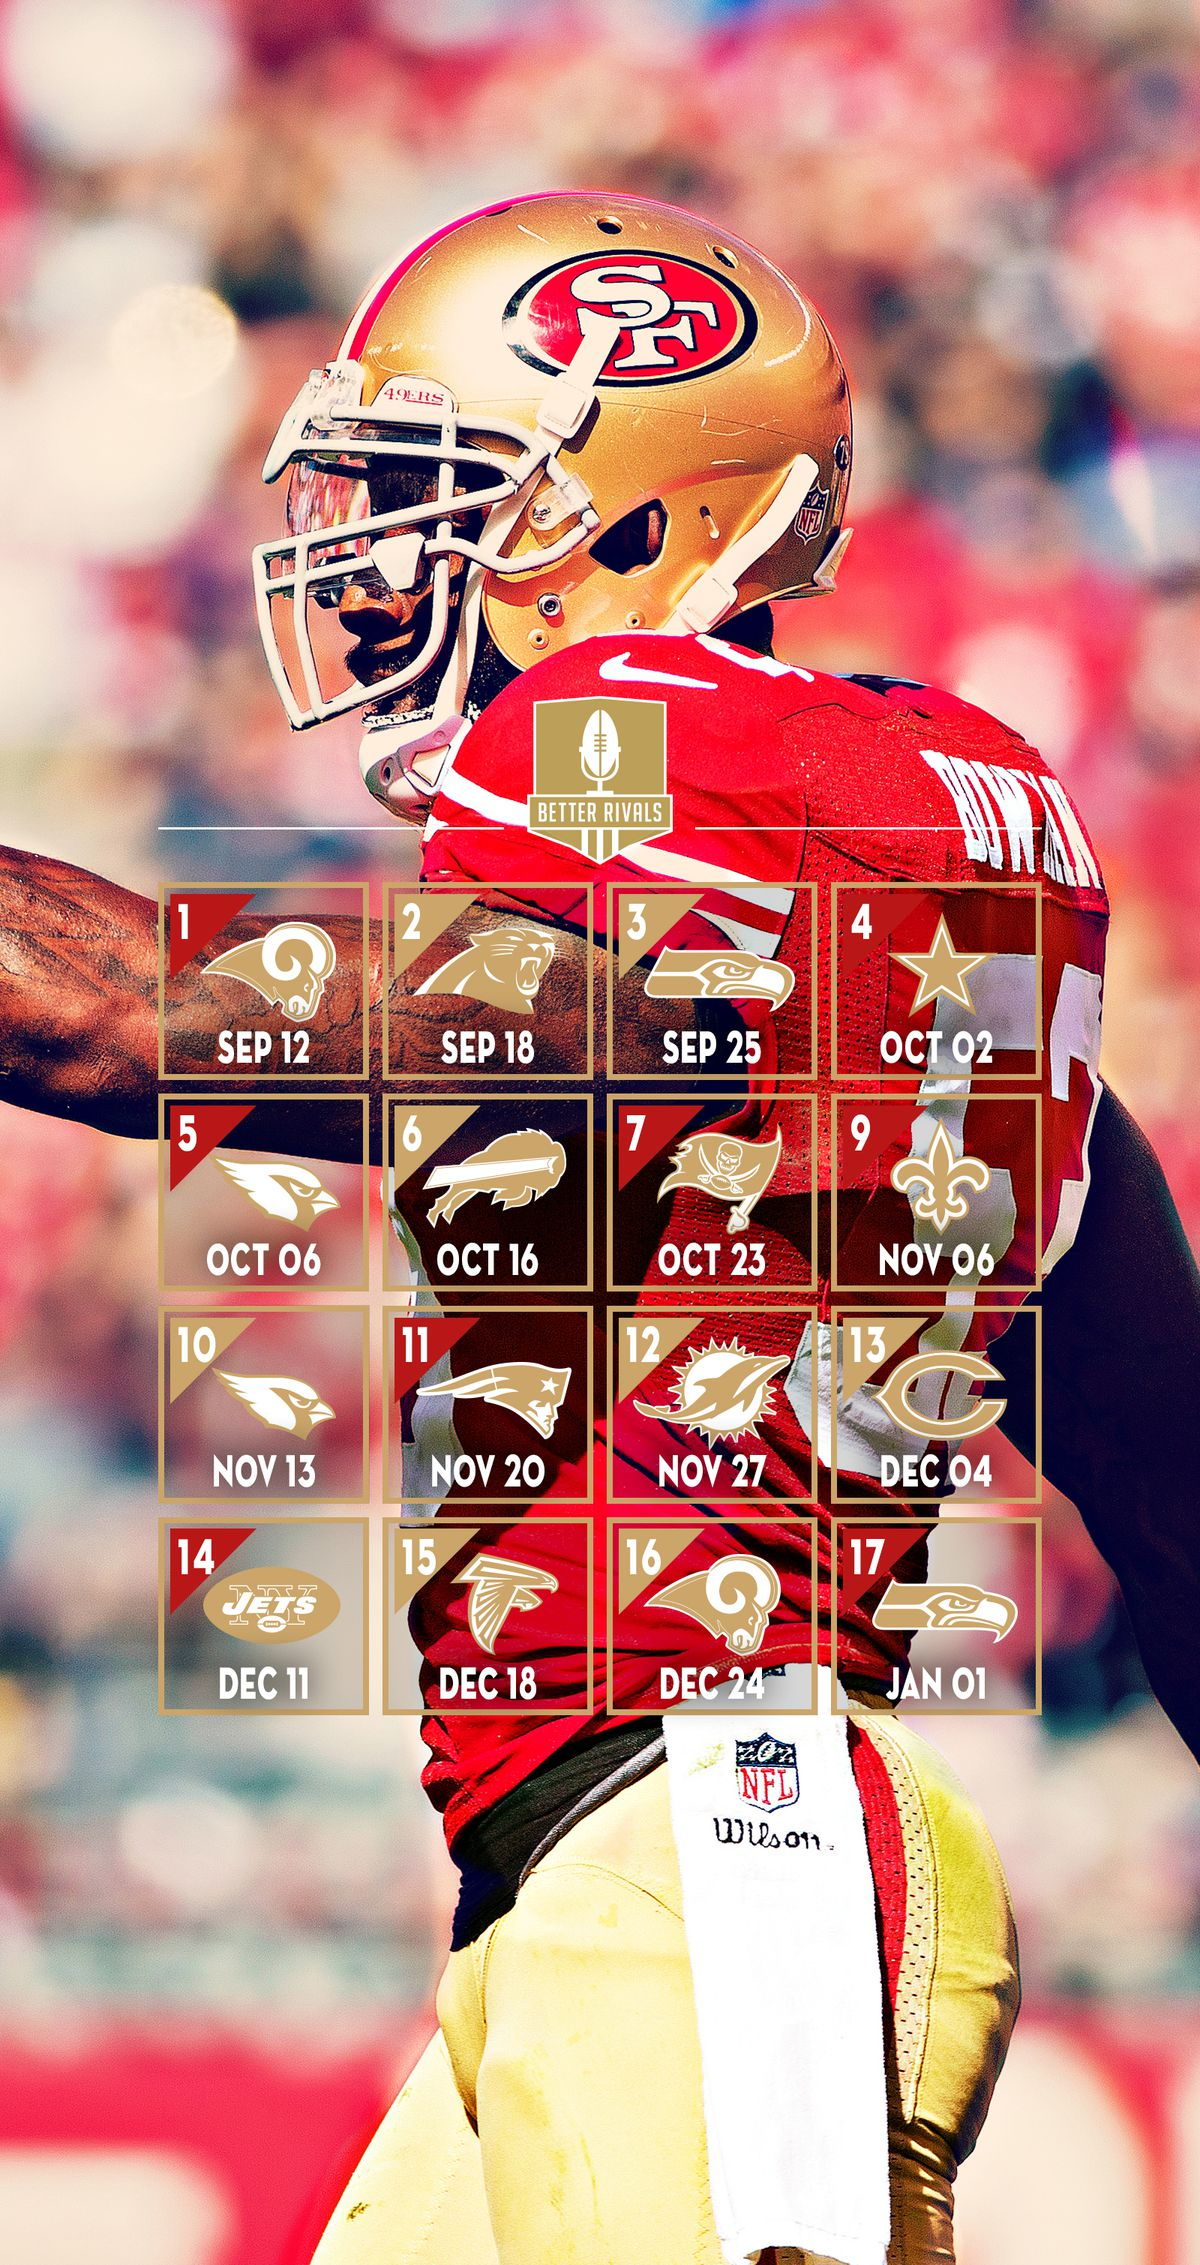 New 49ers Wallpapers For Desktop And Mobile Niners Nation